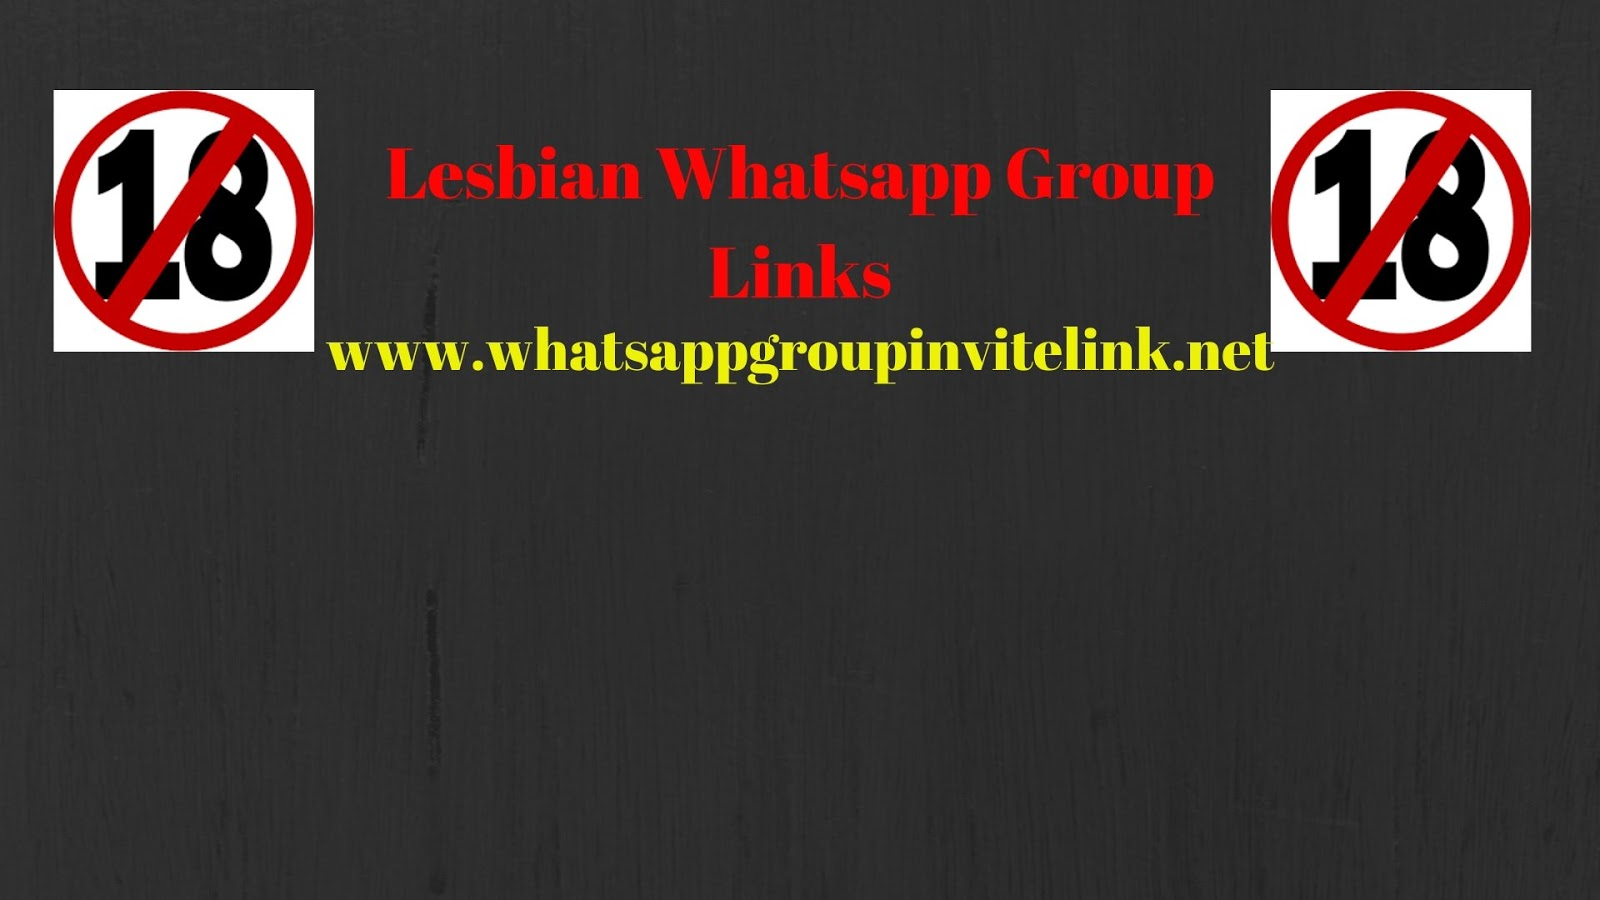 Malaysia whatsapp gay chat group Join United